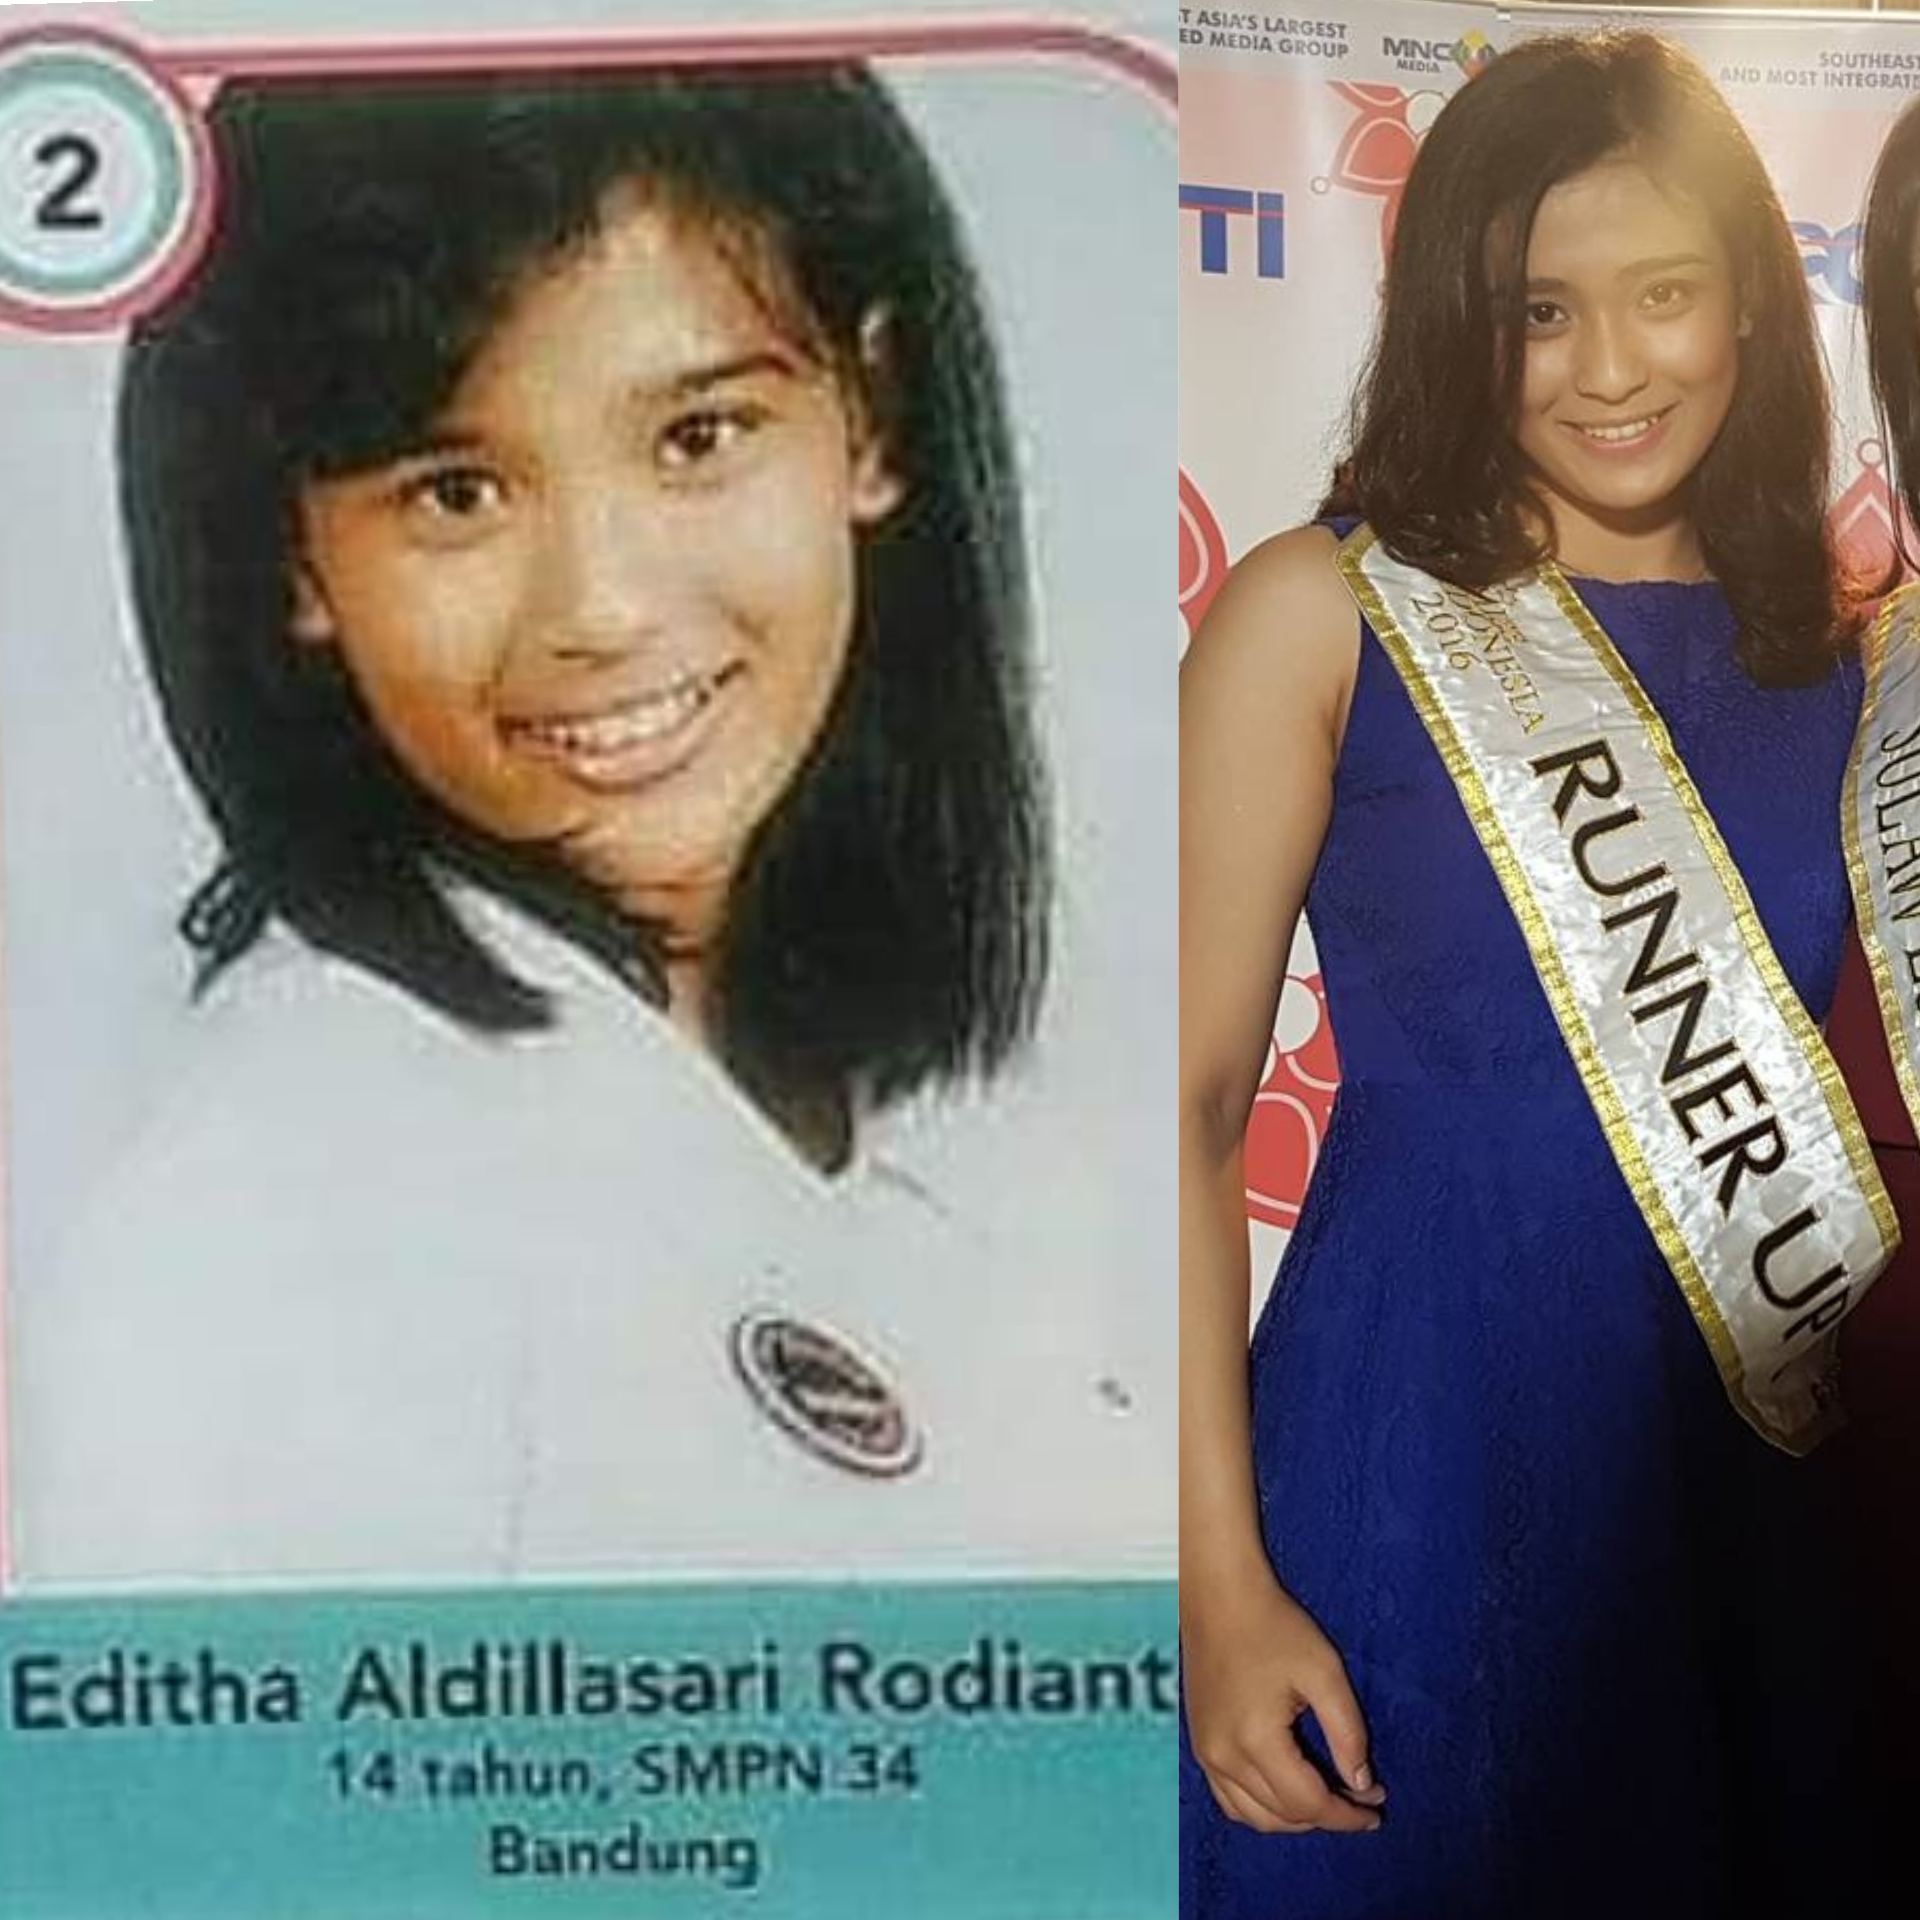 Editha-Aldillasari-Rodianto-Finalis-Gadis-Sampul-2006-Miss-Indonesia-Bengkulu-2016-1st-runner-up-Miss-Indonesia-2016